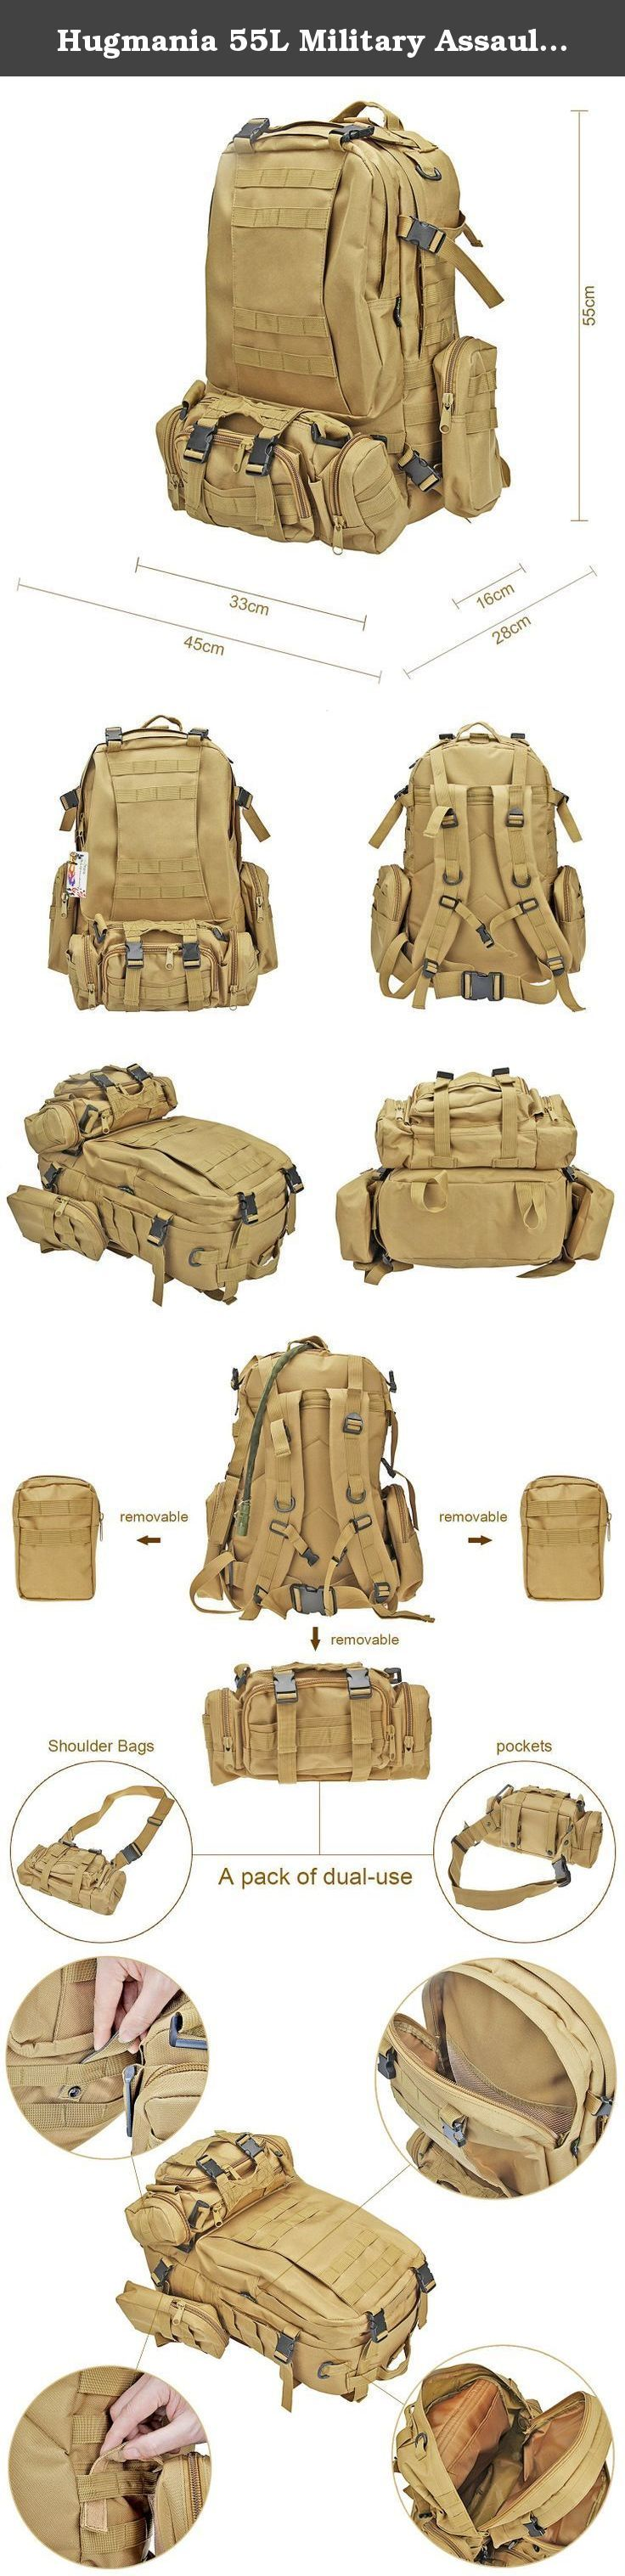 Hugmania 55L Military Assault Tactical Backpack 3 Molle Bags Pack Combat Rucksack Gear with 3L Water Bladder/ Boonie Cap/ Survival Multitool Kit for Camping, Hiking, Trekking, Climbing, Travel (khaki). This New Hugmania Tactical Backpack is ideal and convenient for taking outdoor activities, such as hiking, camping, or climbing. With this Large bag, you're prepared to take on all types of weather conditions and terrain. High quality with competitive price and more Useful gears are…